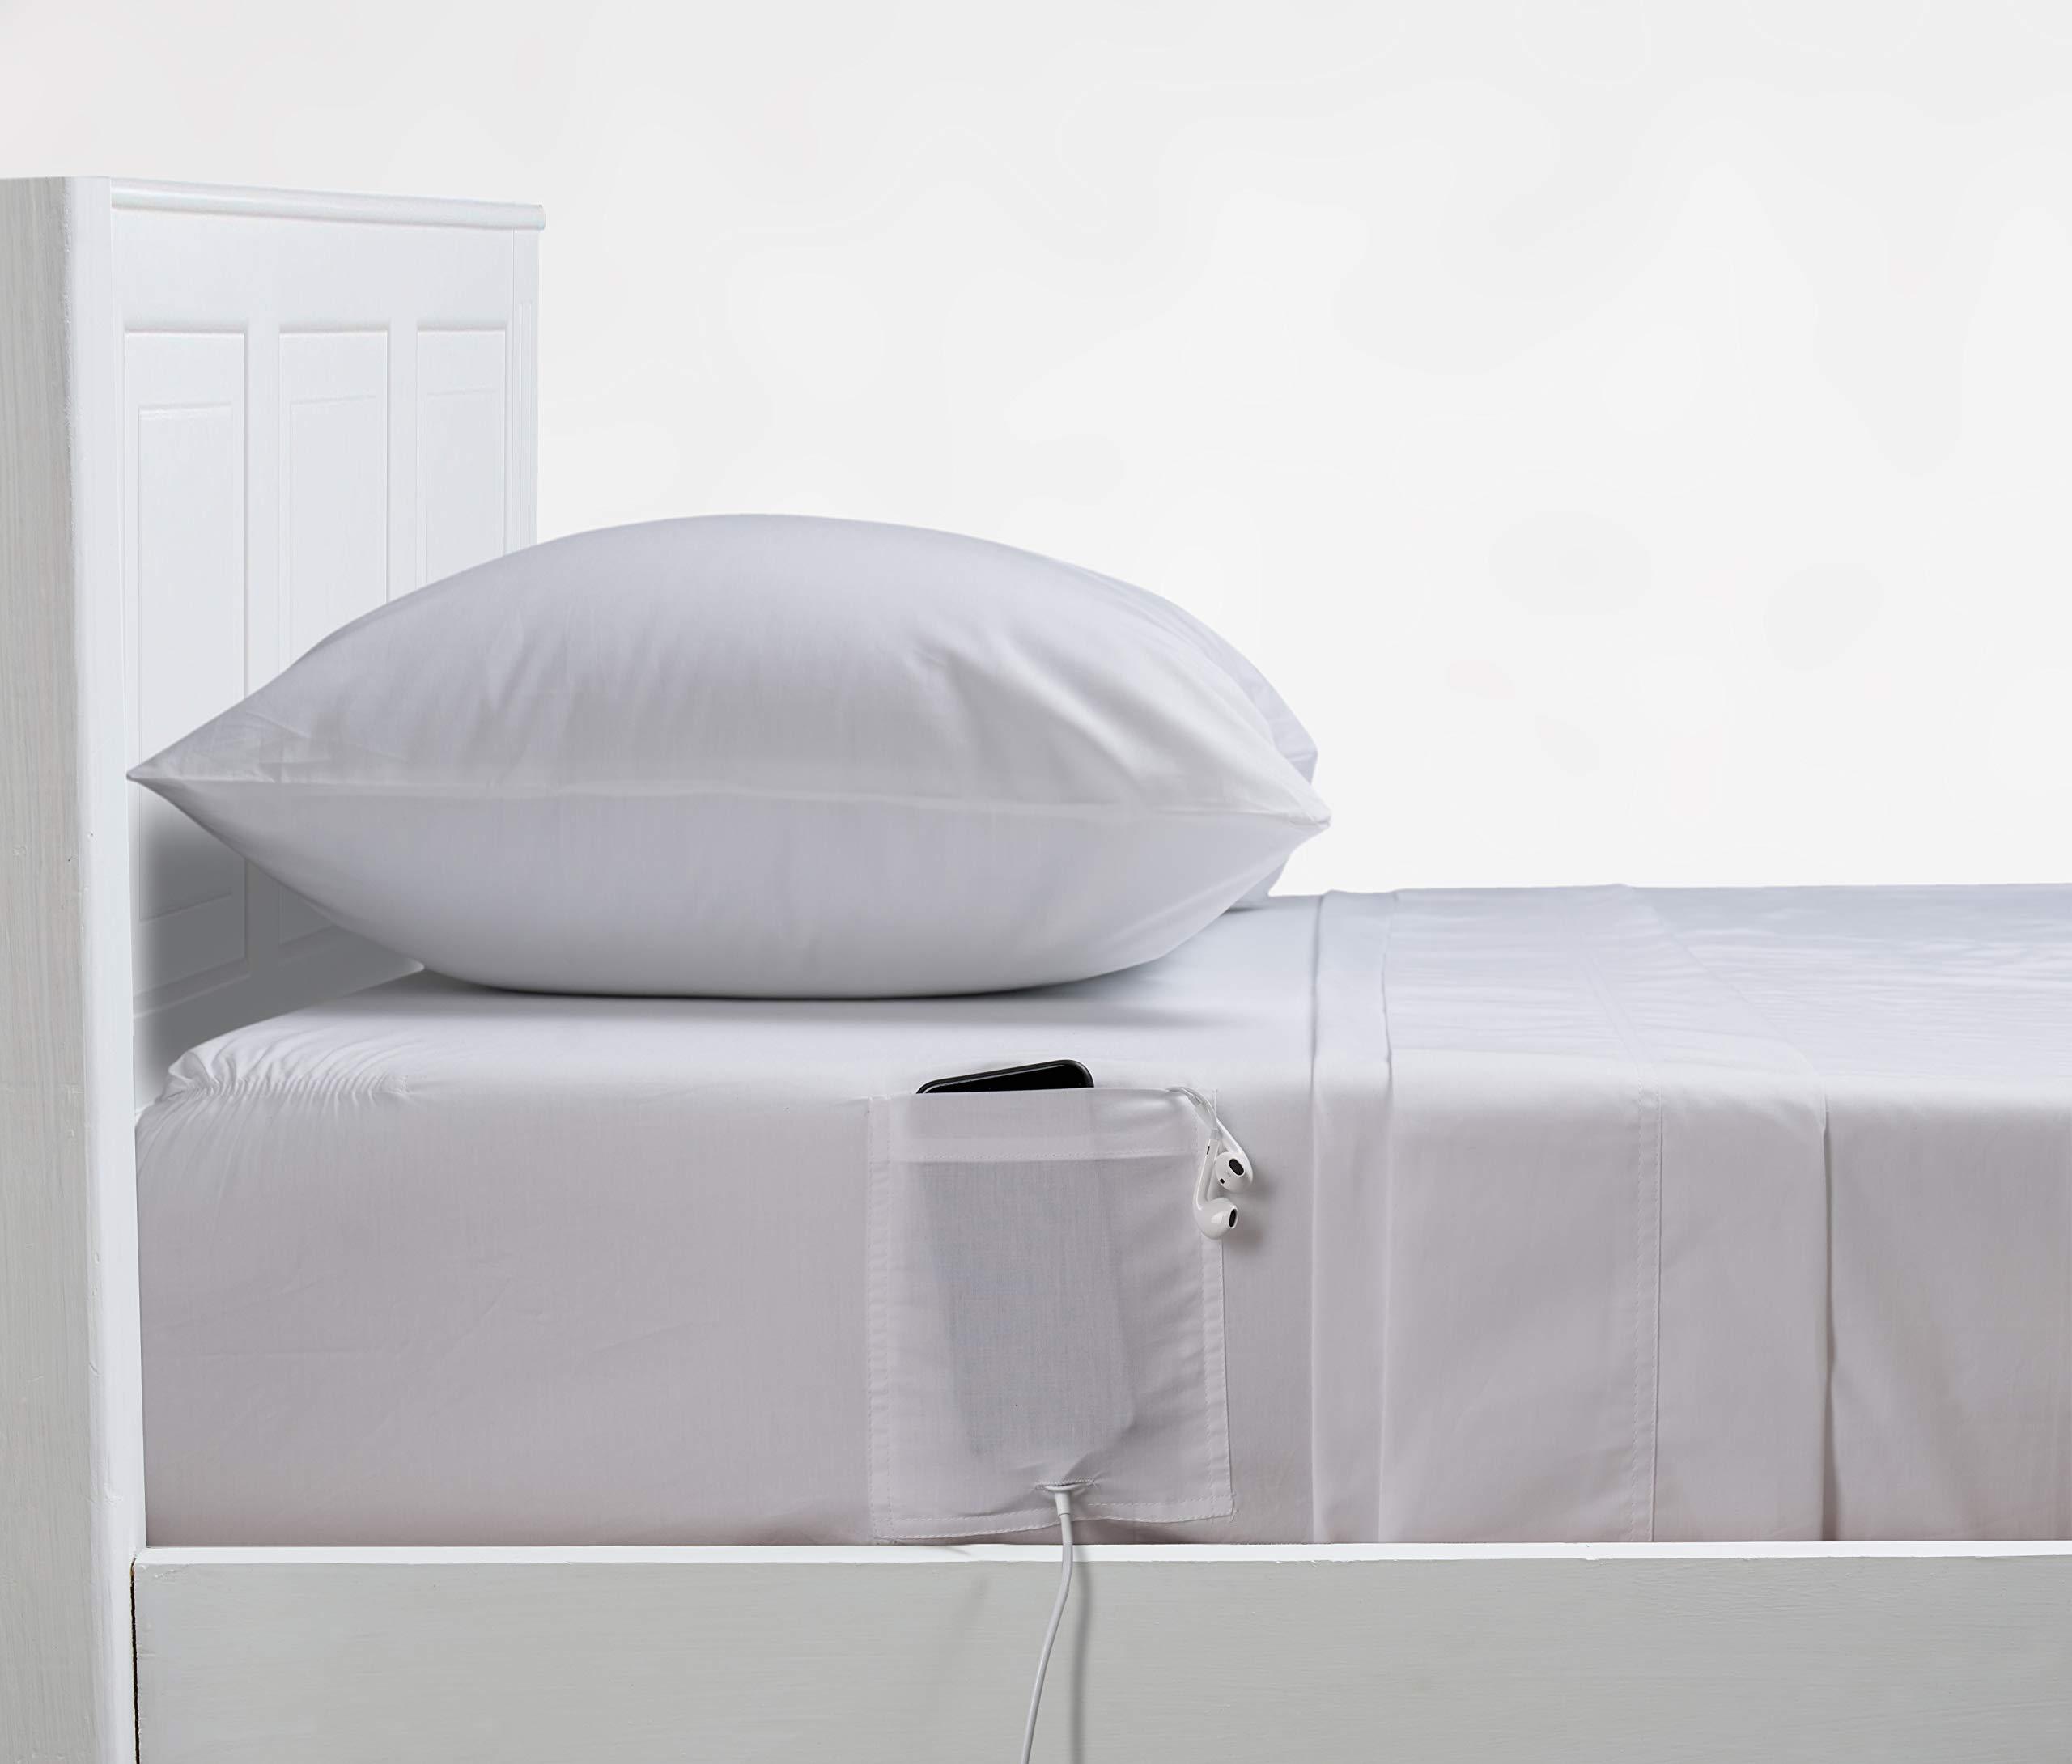 Distinct Dorm Sheet Set with Cell Phone Pocket on Each Side -Soft & Smooth 3 Piece Cotton Sheet Set, Fits Upto 15'' DEEP Pocket, Luxury Hotel Bedding, Oeko-TEX Certified, Brilliant White, Twin/Twin XL